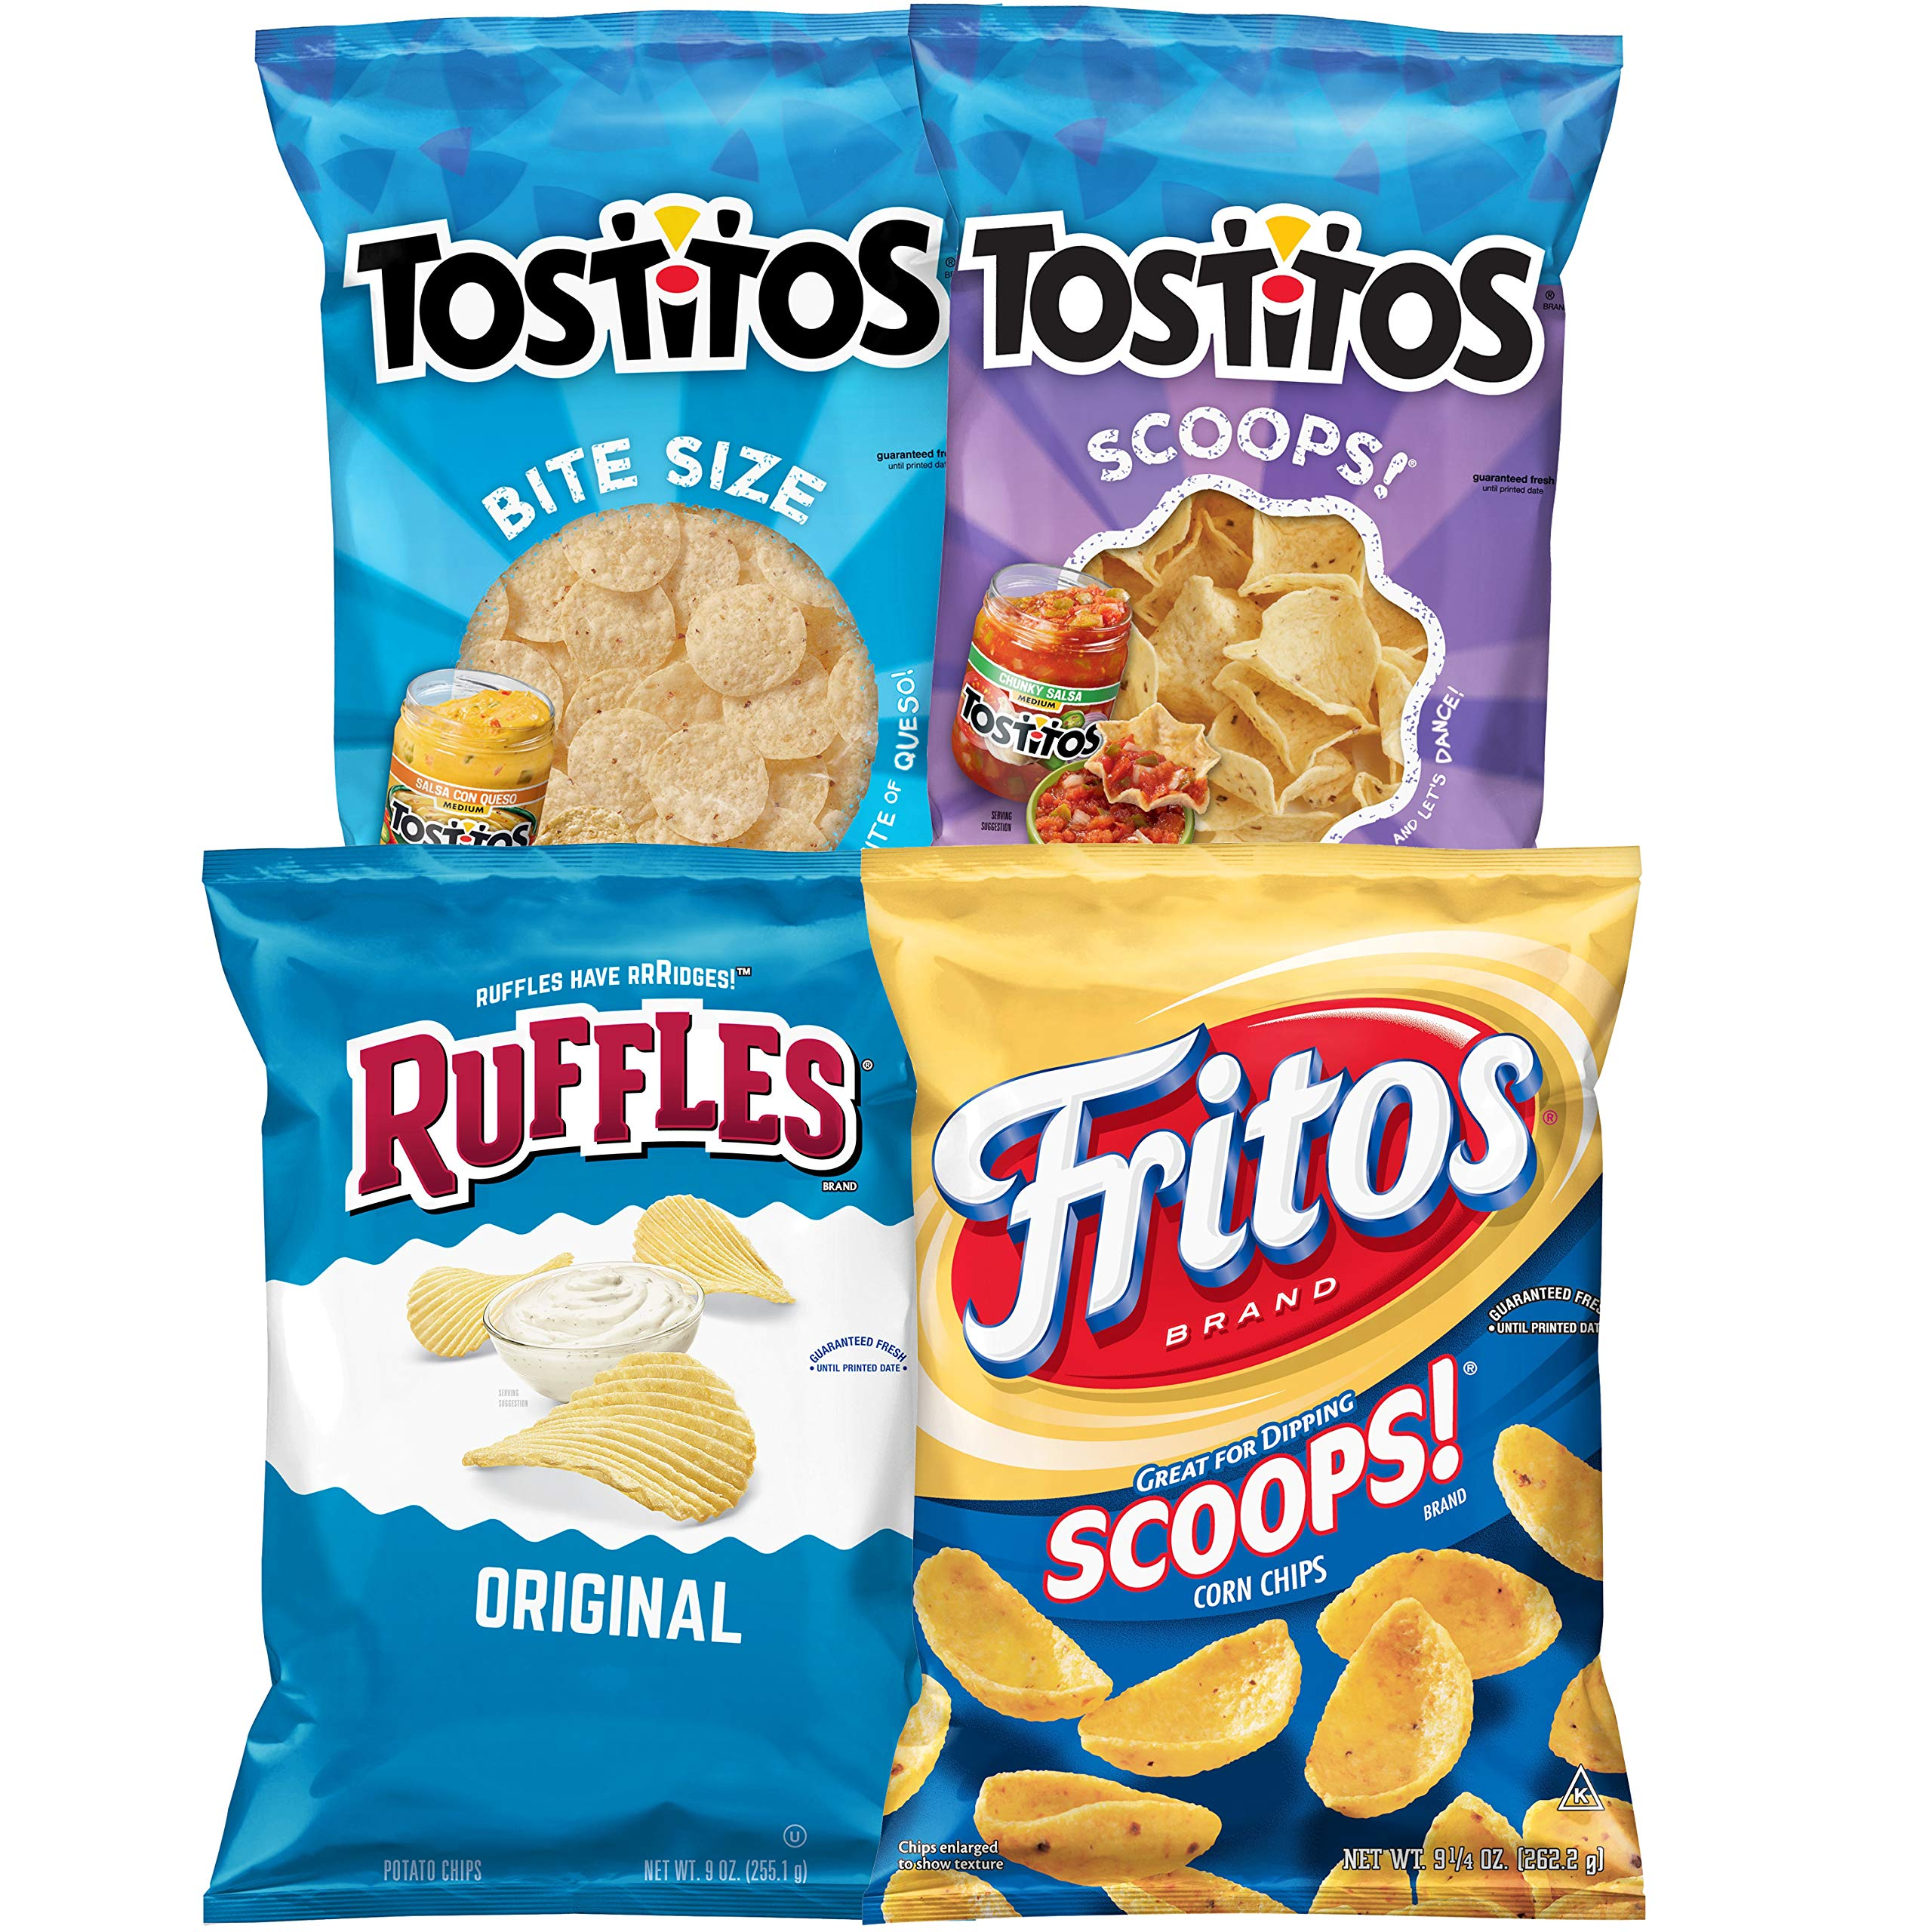 Frito-Lay Good for Variety Pack with Tostitos Scoops Tostitos BiteSize Ruffles Fritos Pack, Big Bag Dipping Mix, 4 Count